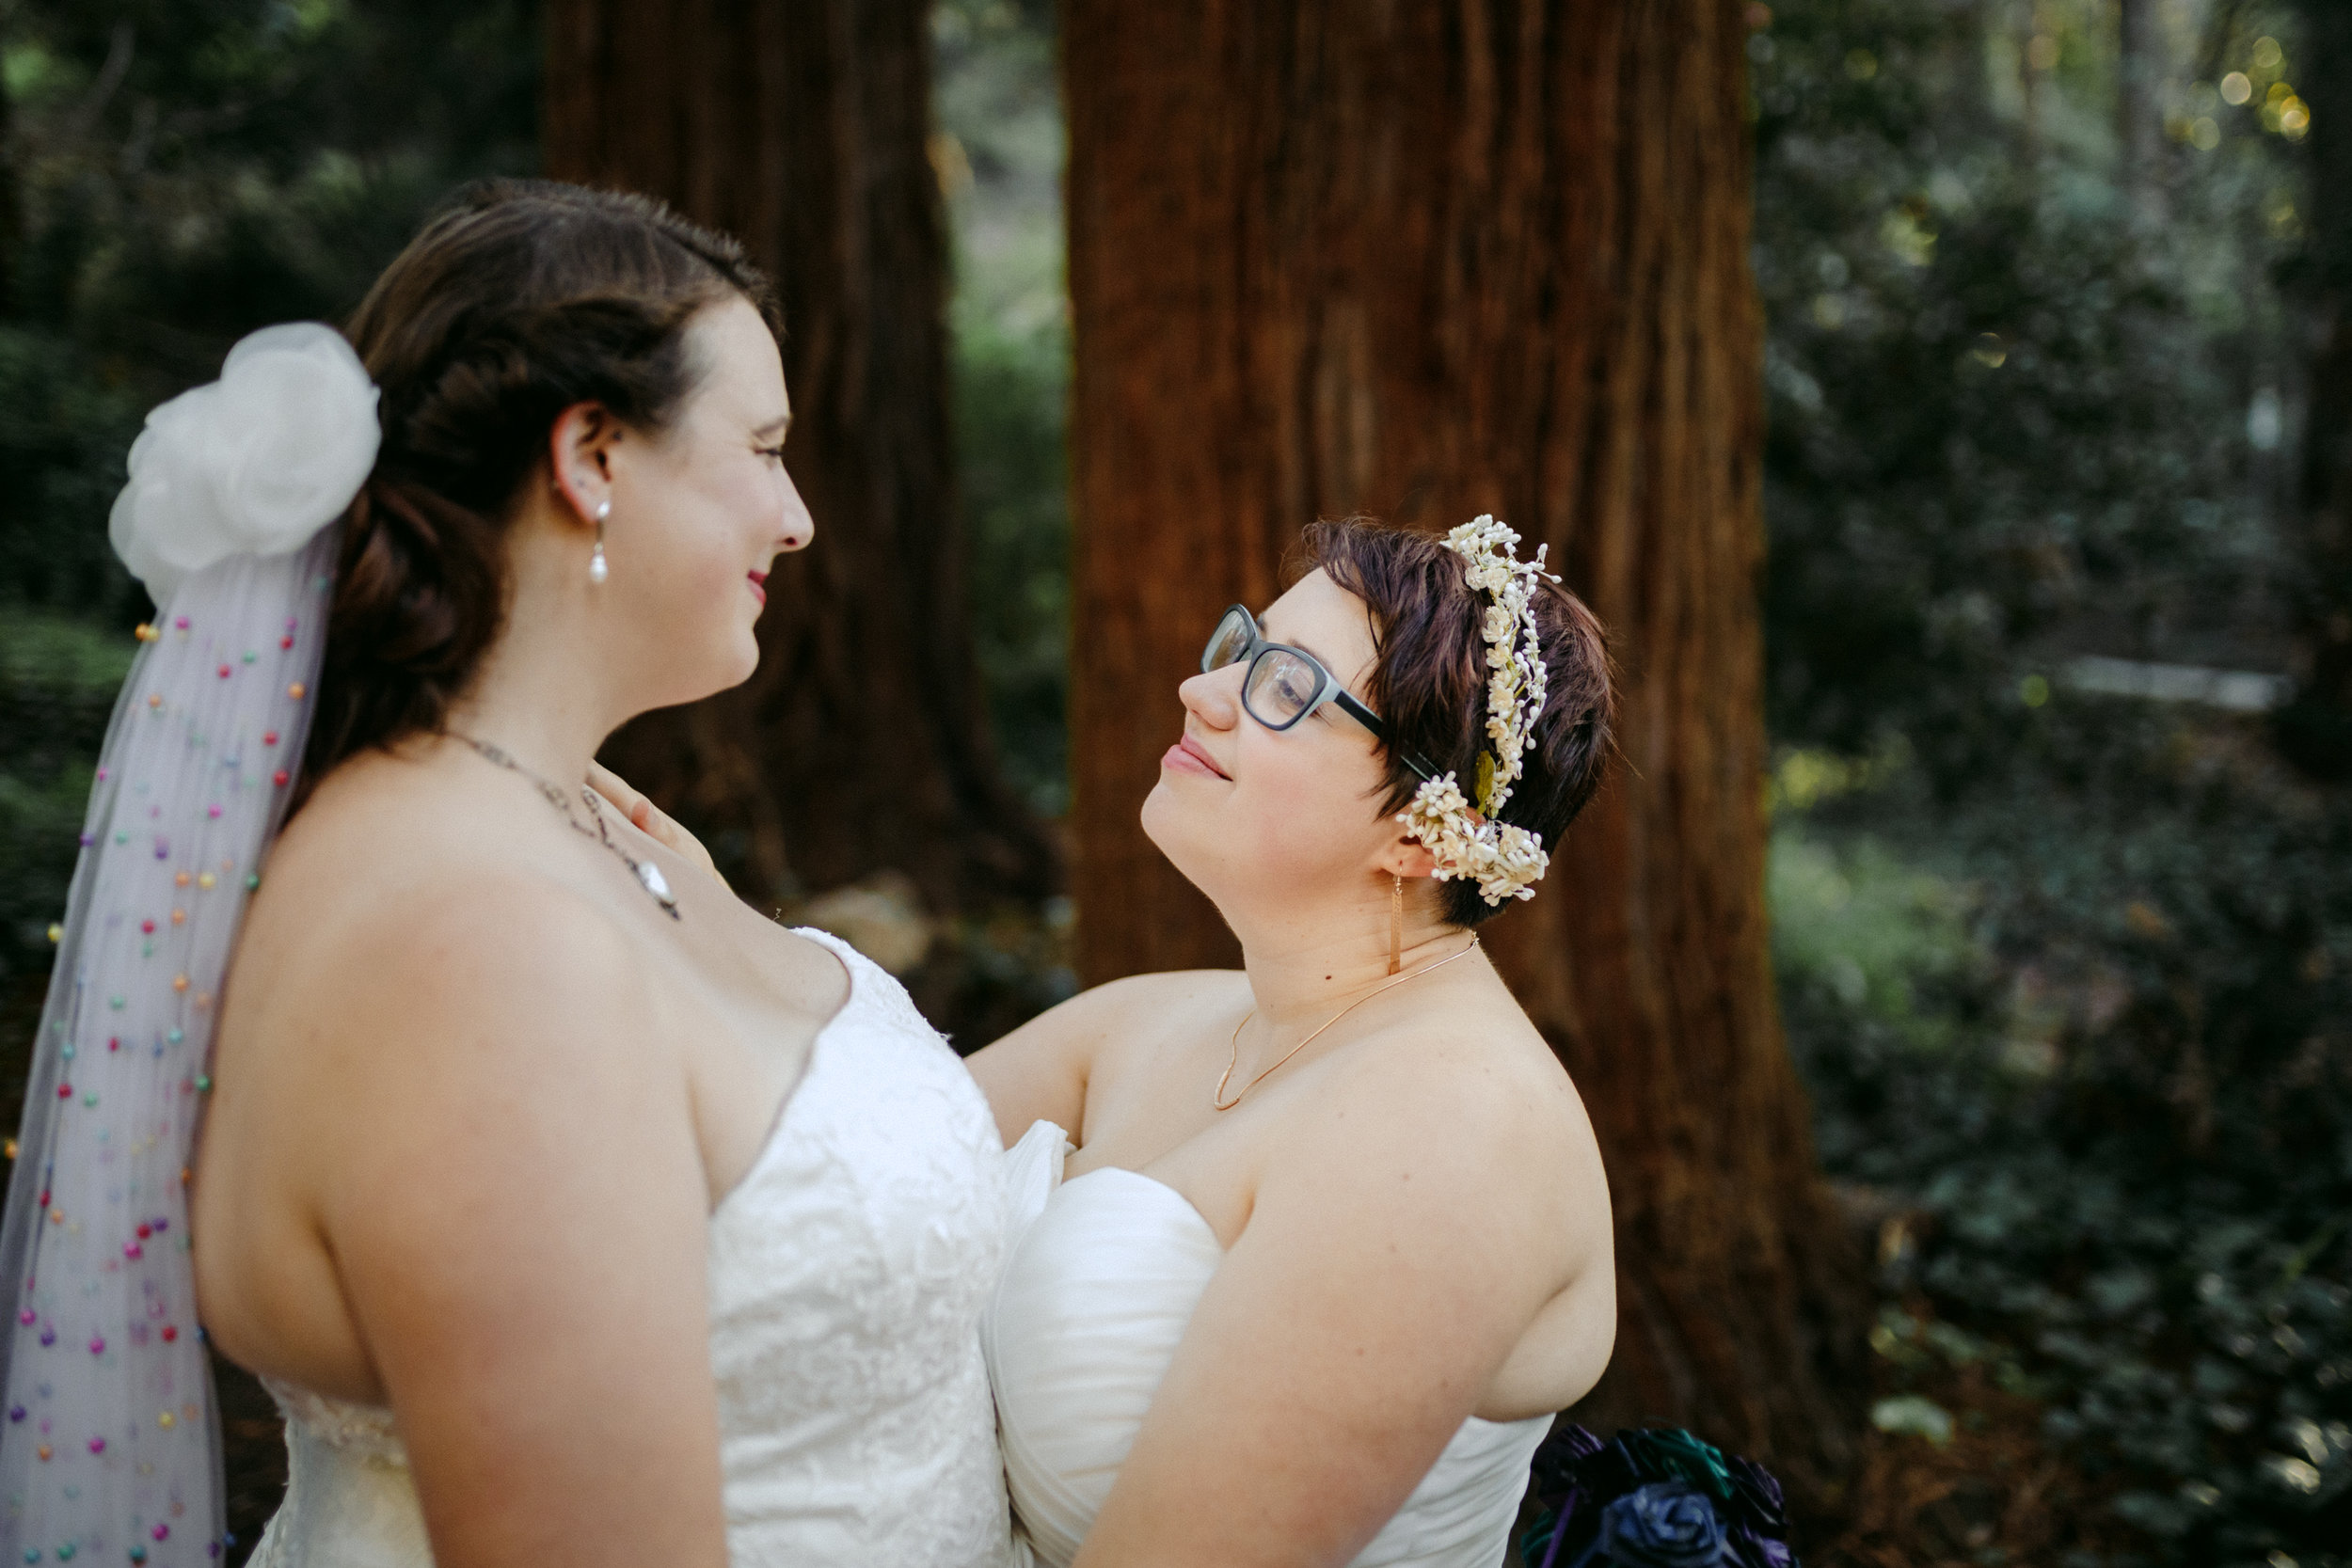 san_francisco_elopement_photographer-61.jpg